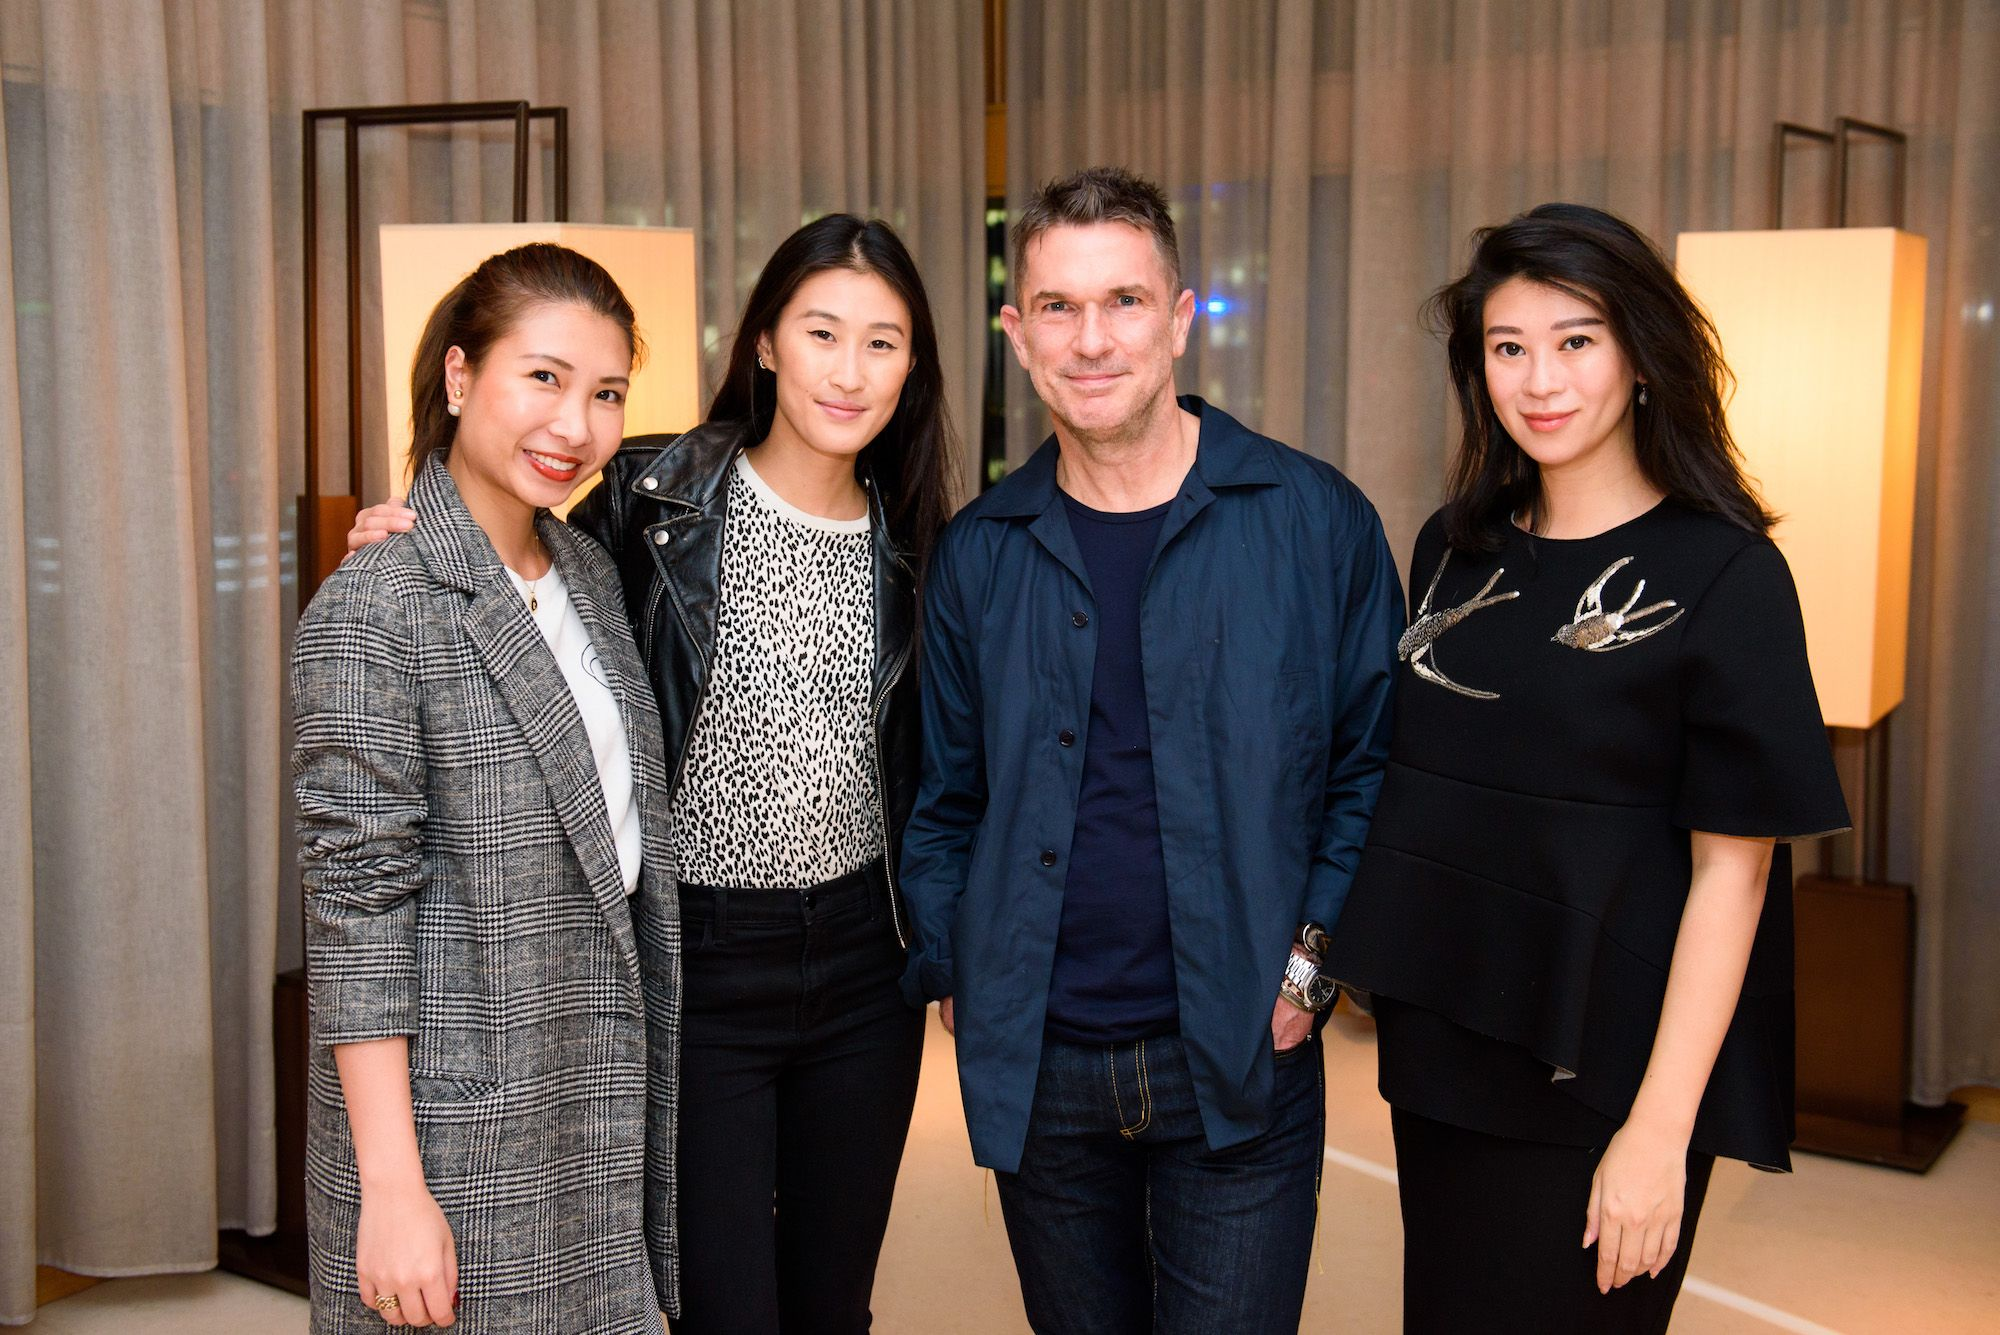 Rosana Lai, Justine Lee, Christopher Jackson, Christy Liang